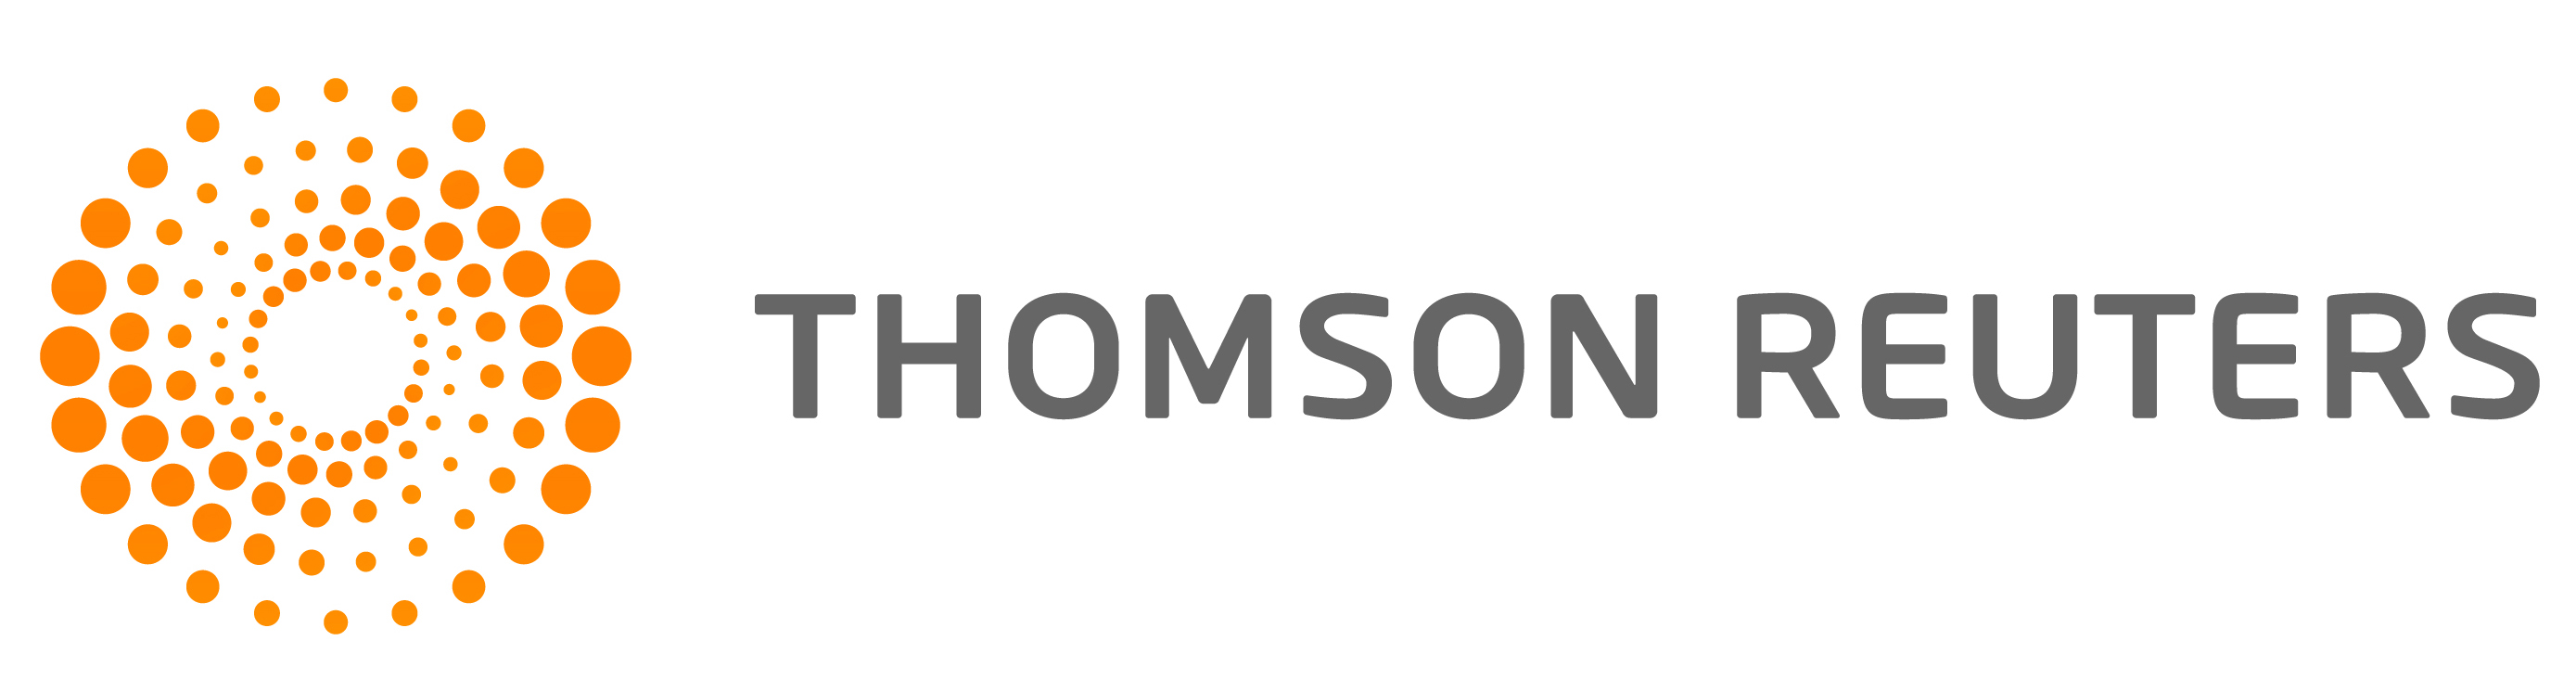 Thomson Reuters's logo